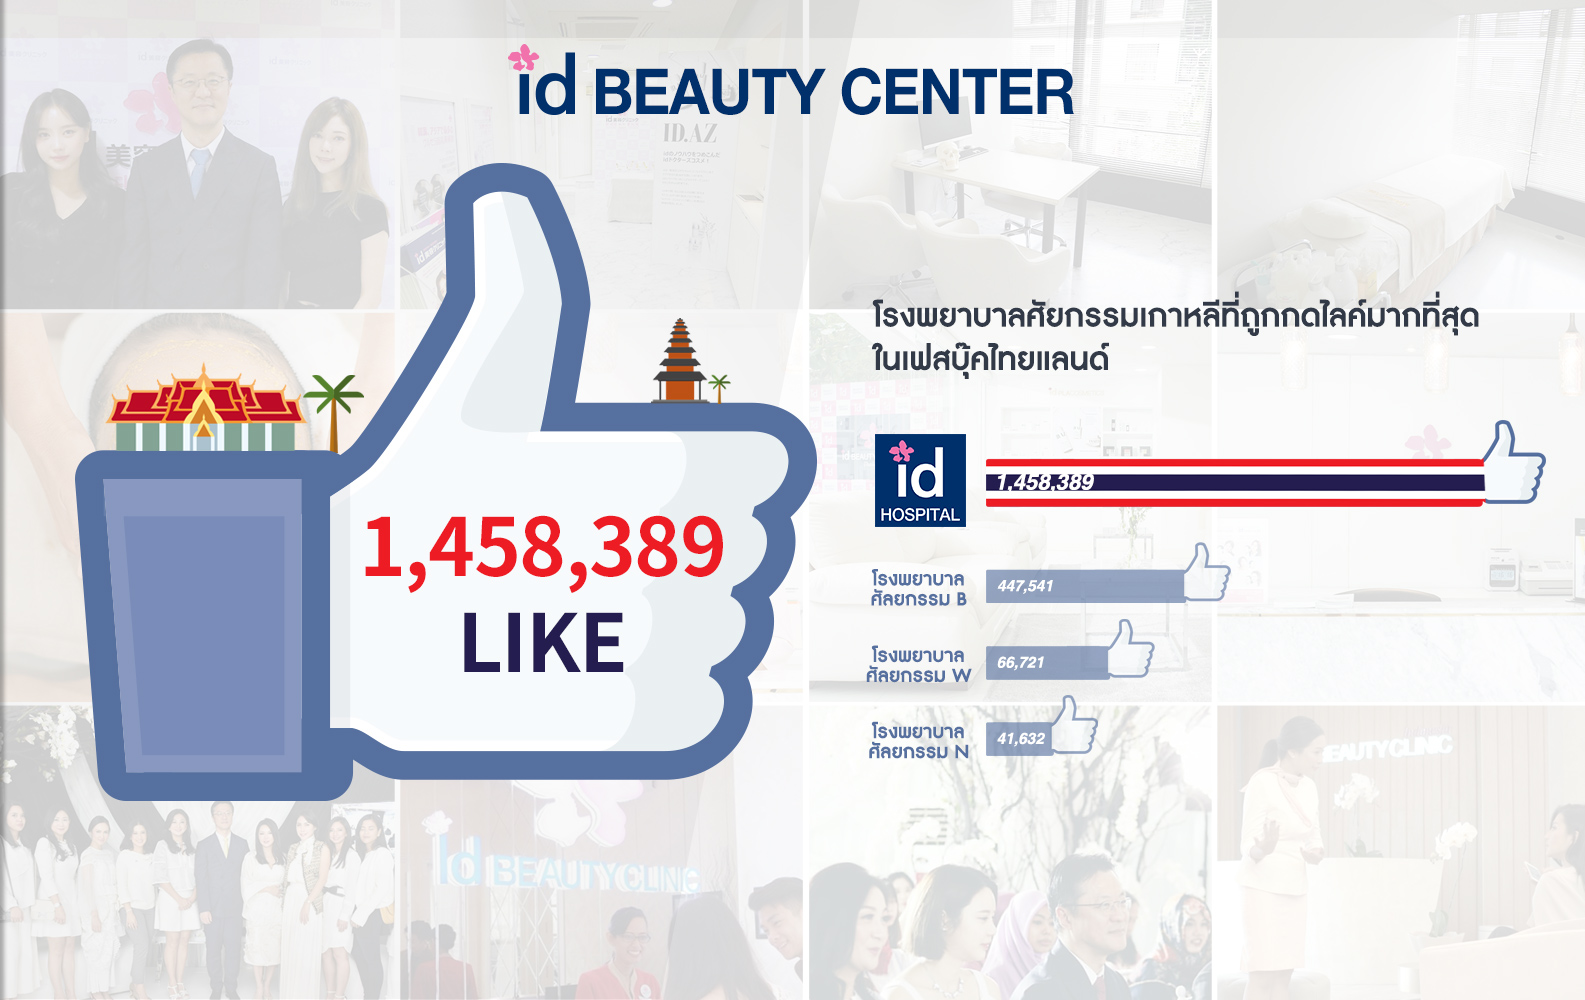 id beauty center